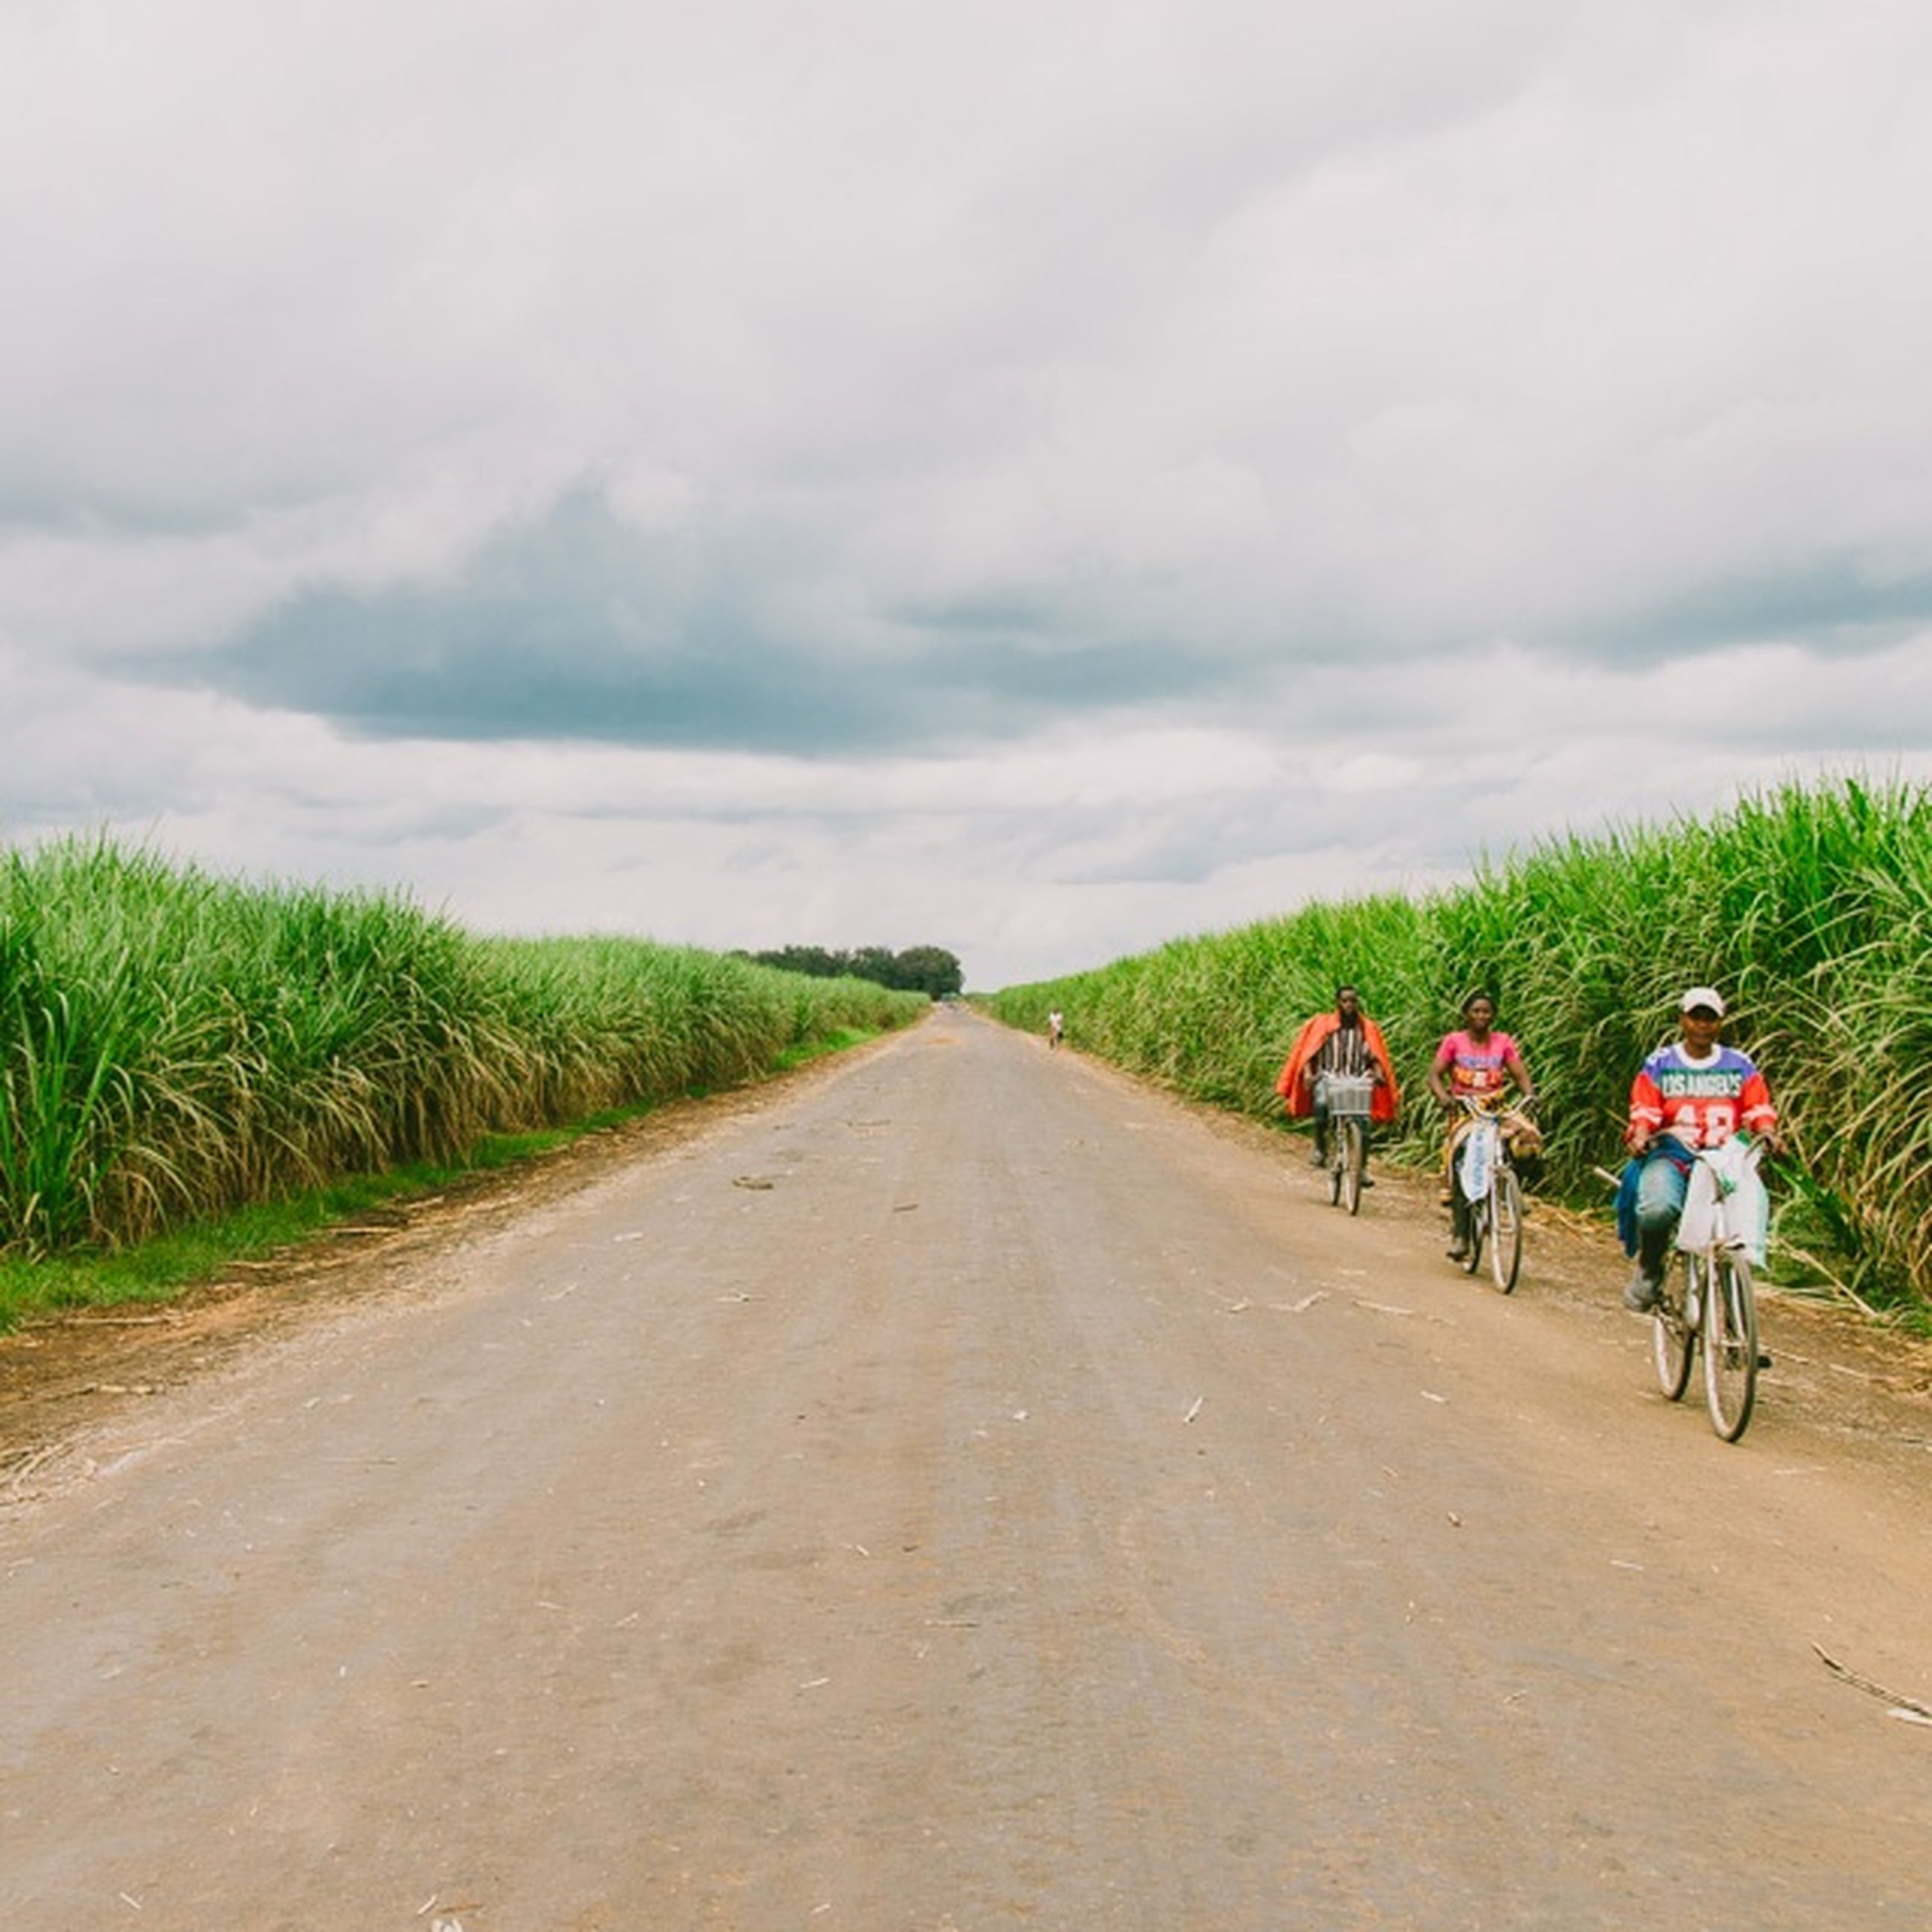 sky, the way forward, transportation, cloud - sky, road, men, lifestyles, cloudy, diminishing perspective, vanishing point, leisure activity, cloud, rear view, bicycle, dirt road, land vehicle, full length, walking, country road